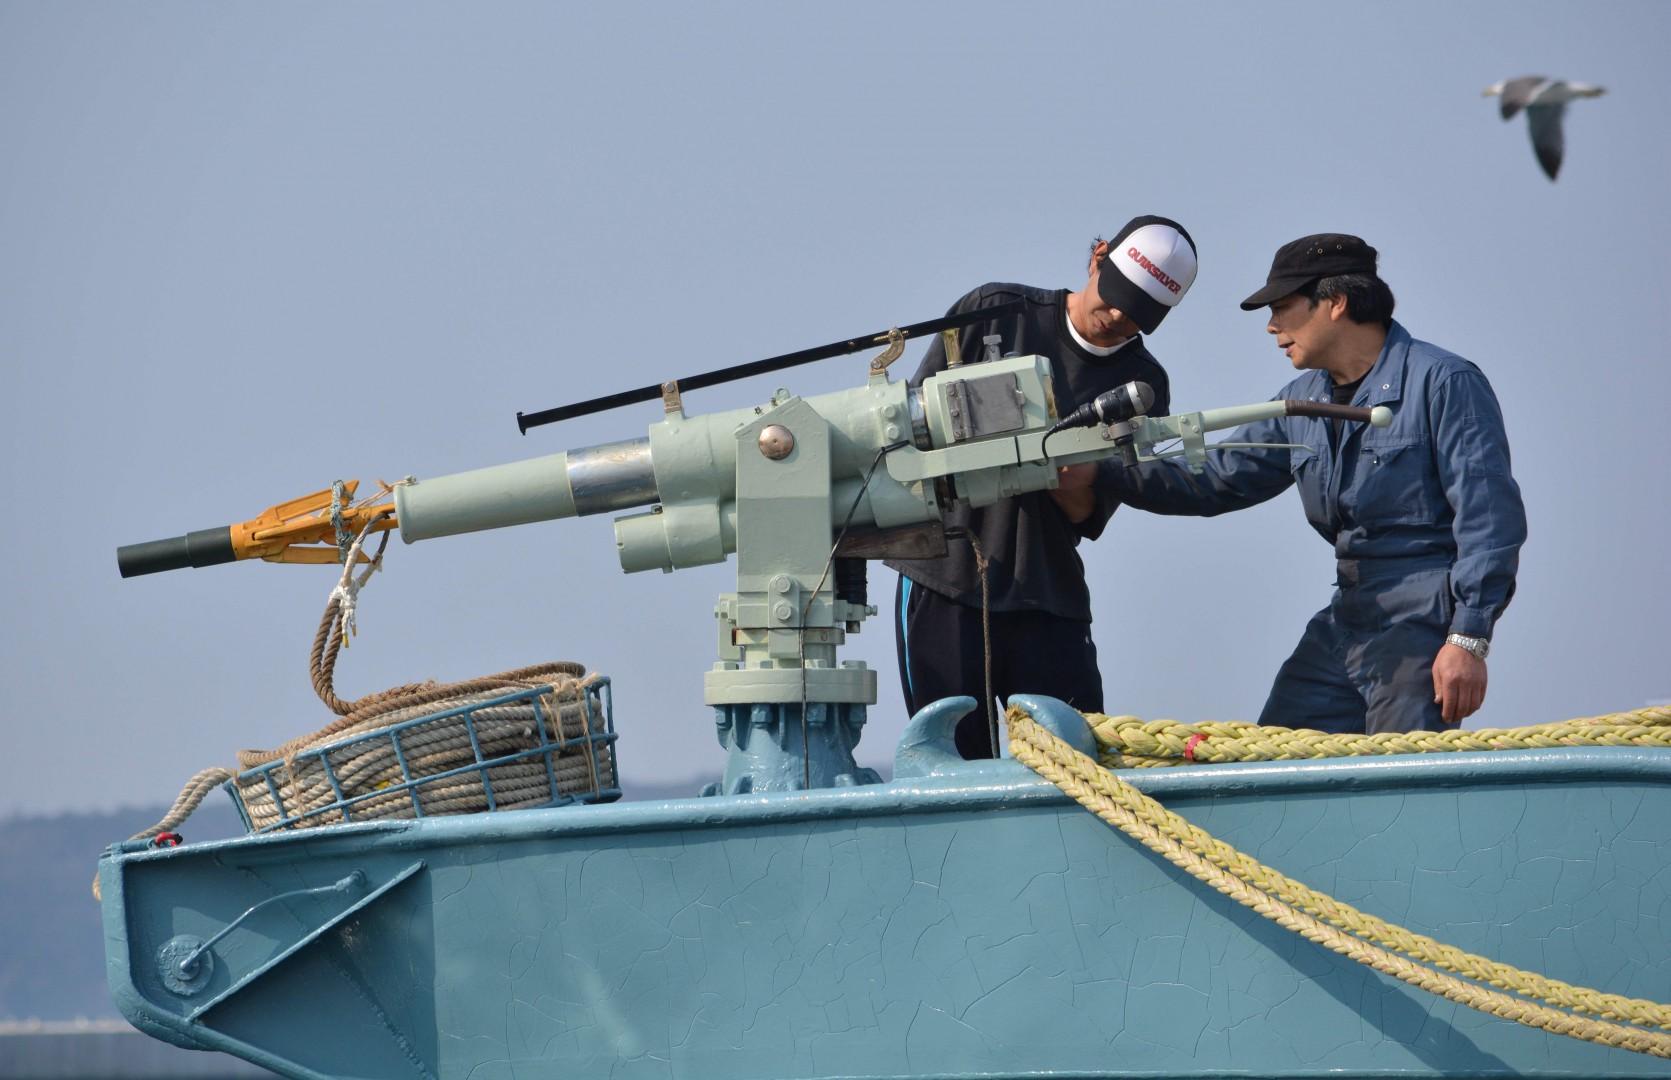 (FILES) In this file photo taken on April 25, 2014 crew members of a whaling ship check a whaling gun or harpoon before departure at Ayukawa port in Ishinomaki City. - On September 10, 2018 pro- and anti-whaling nations locked horns as the International Whaling Commission (IWC) began meeting in Brazil amid outrage over Japan's proposal to end a three-decade moratorium on commercial whale hunting. (Photo by Kazuhiro NOGI / AFP)